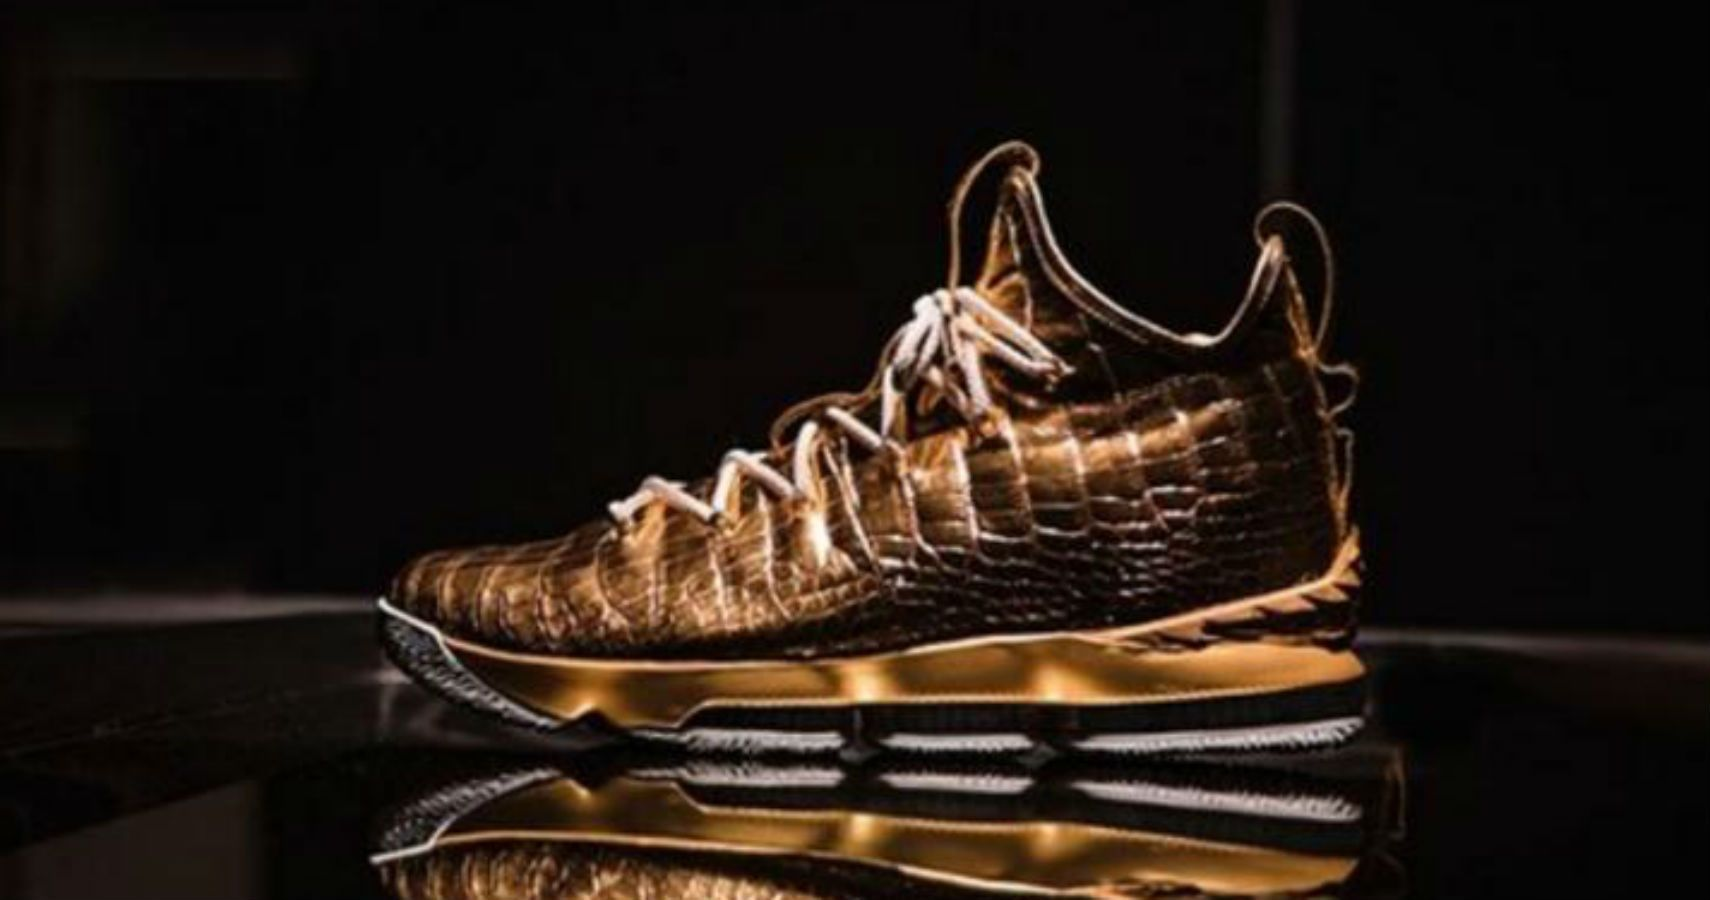 These One-Of-A-Kind LeBron 15s Are Studded With Gold & Diamonds